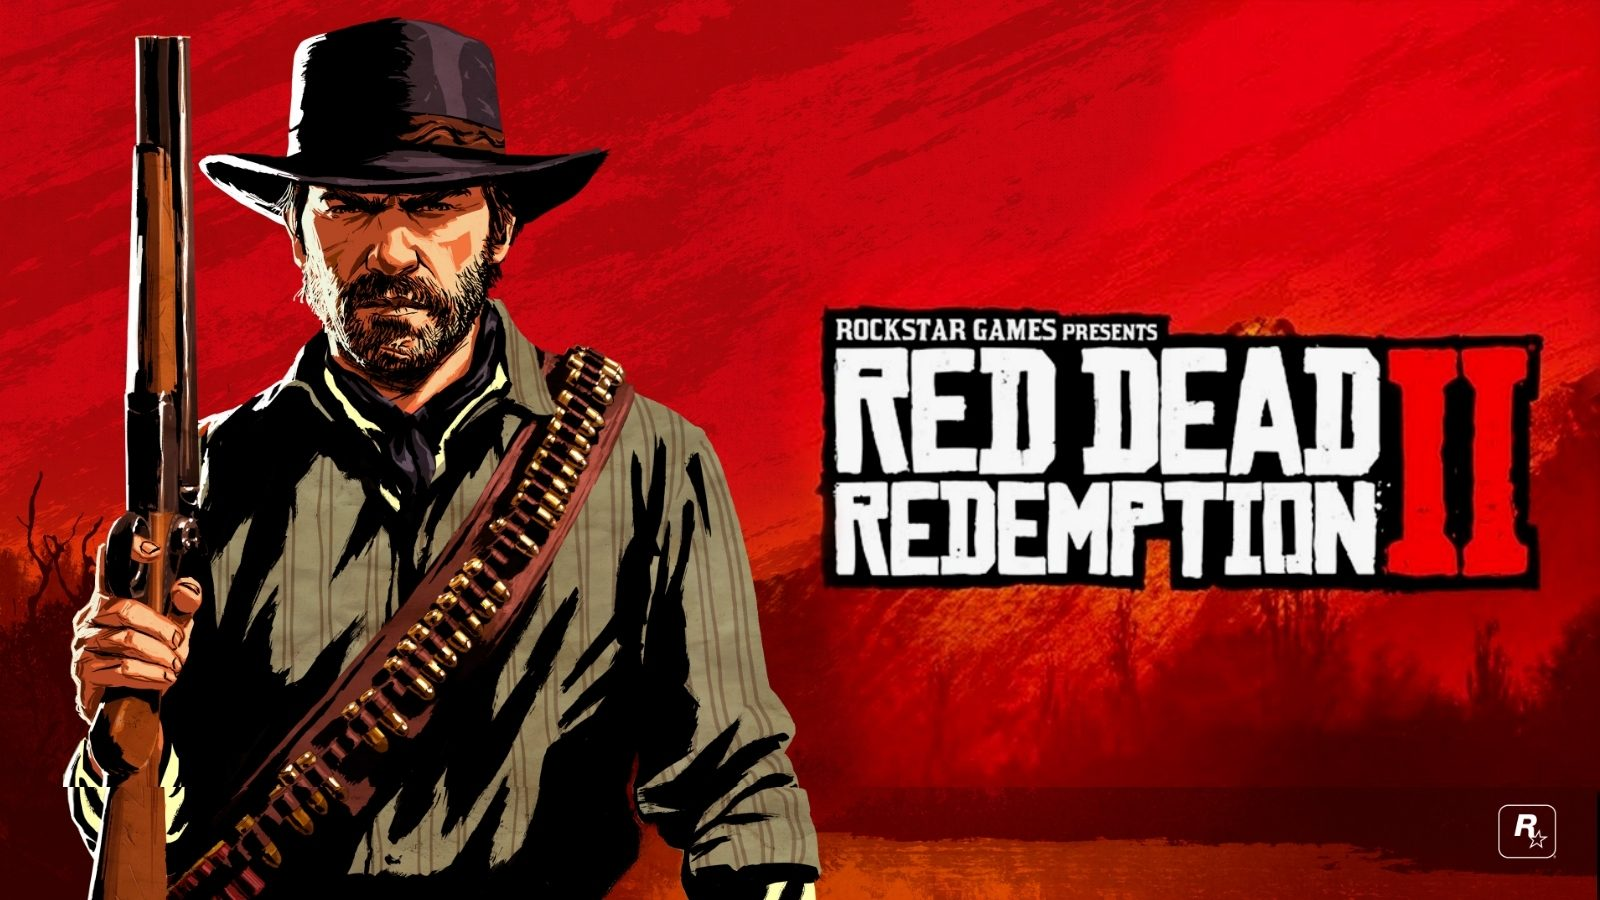 Il miglior modo per fare una conference call? Su Red Dead Redemption 2 thumbnail